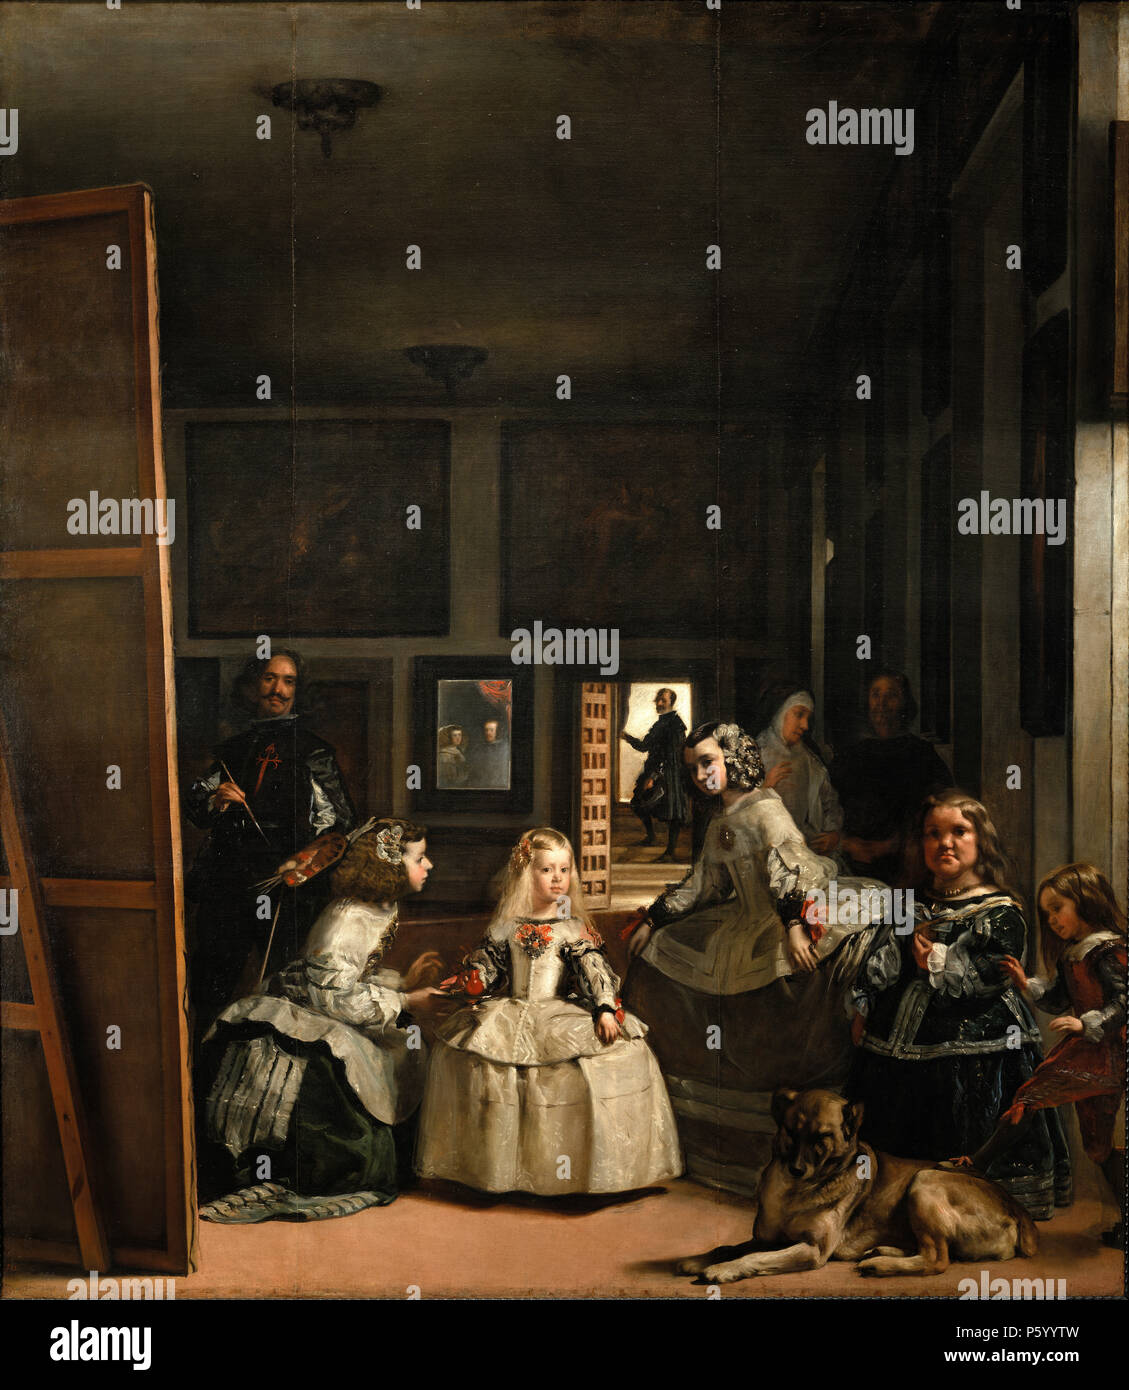 Las Meninas, The Ladies-in-waiting, 1656 by Diego Velázquez - Stock Image